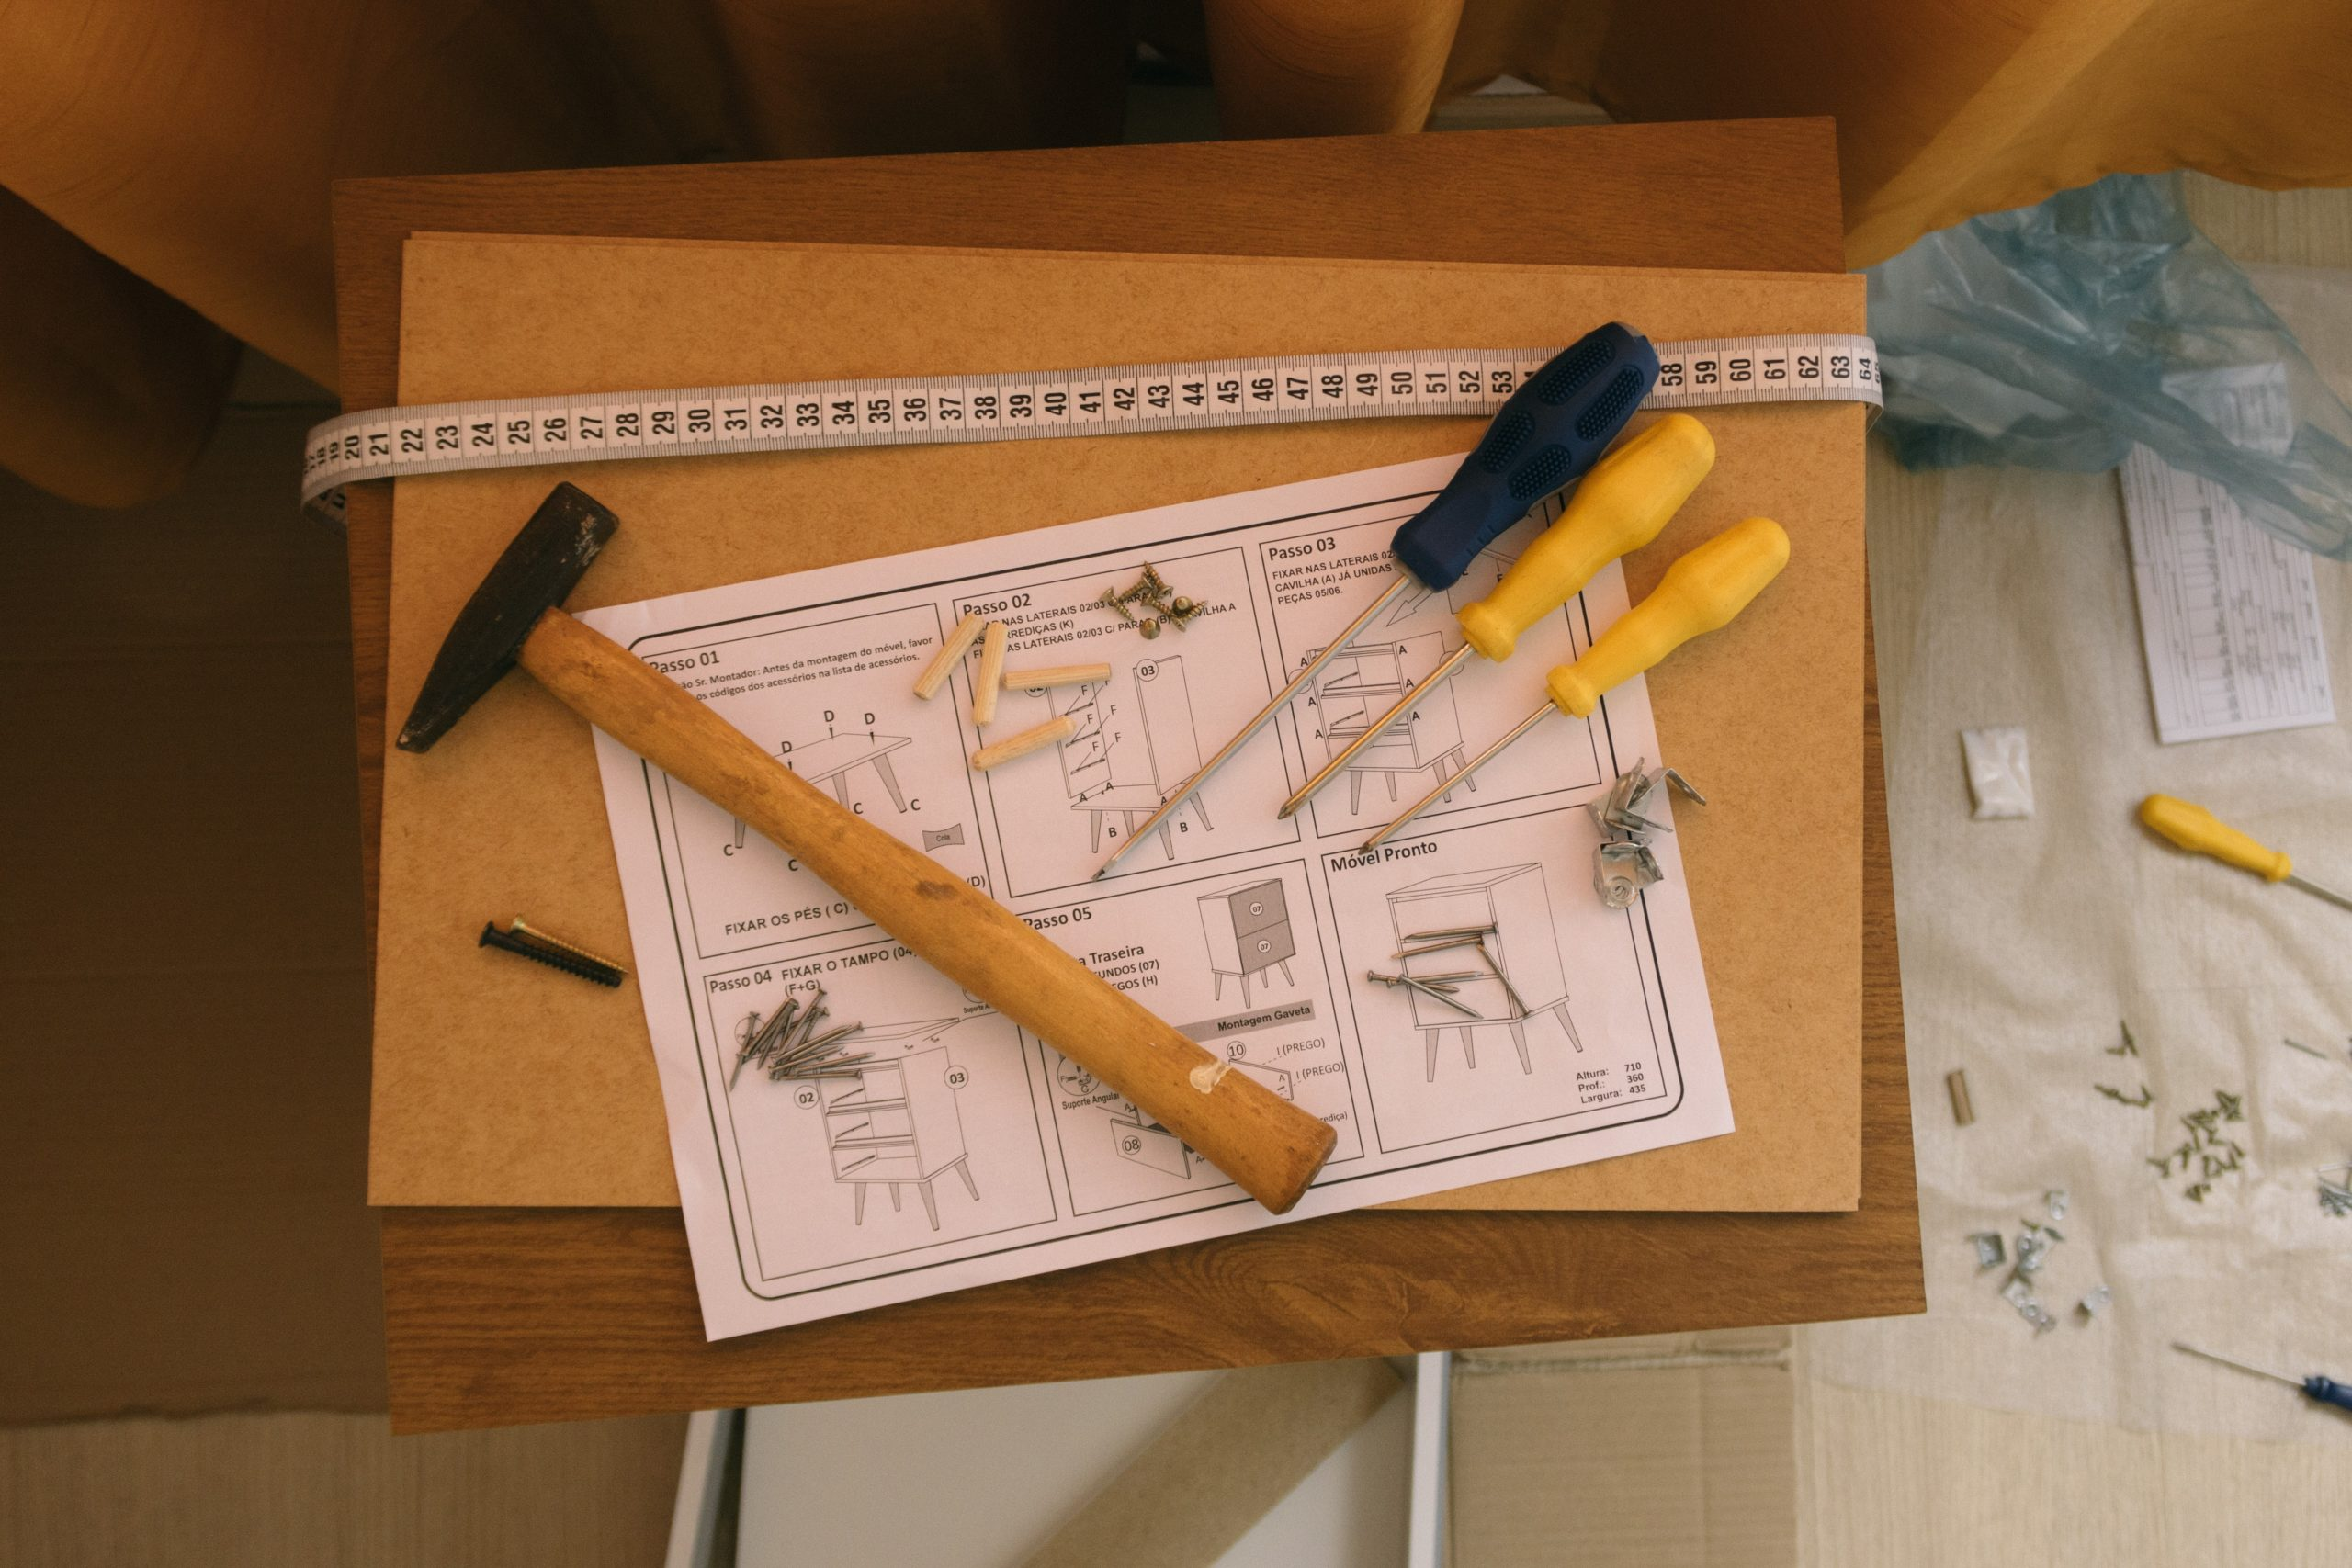 Flat pack furniture assembly instructions and some tools